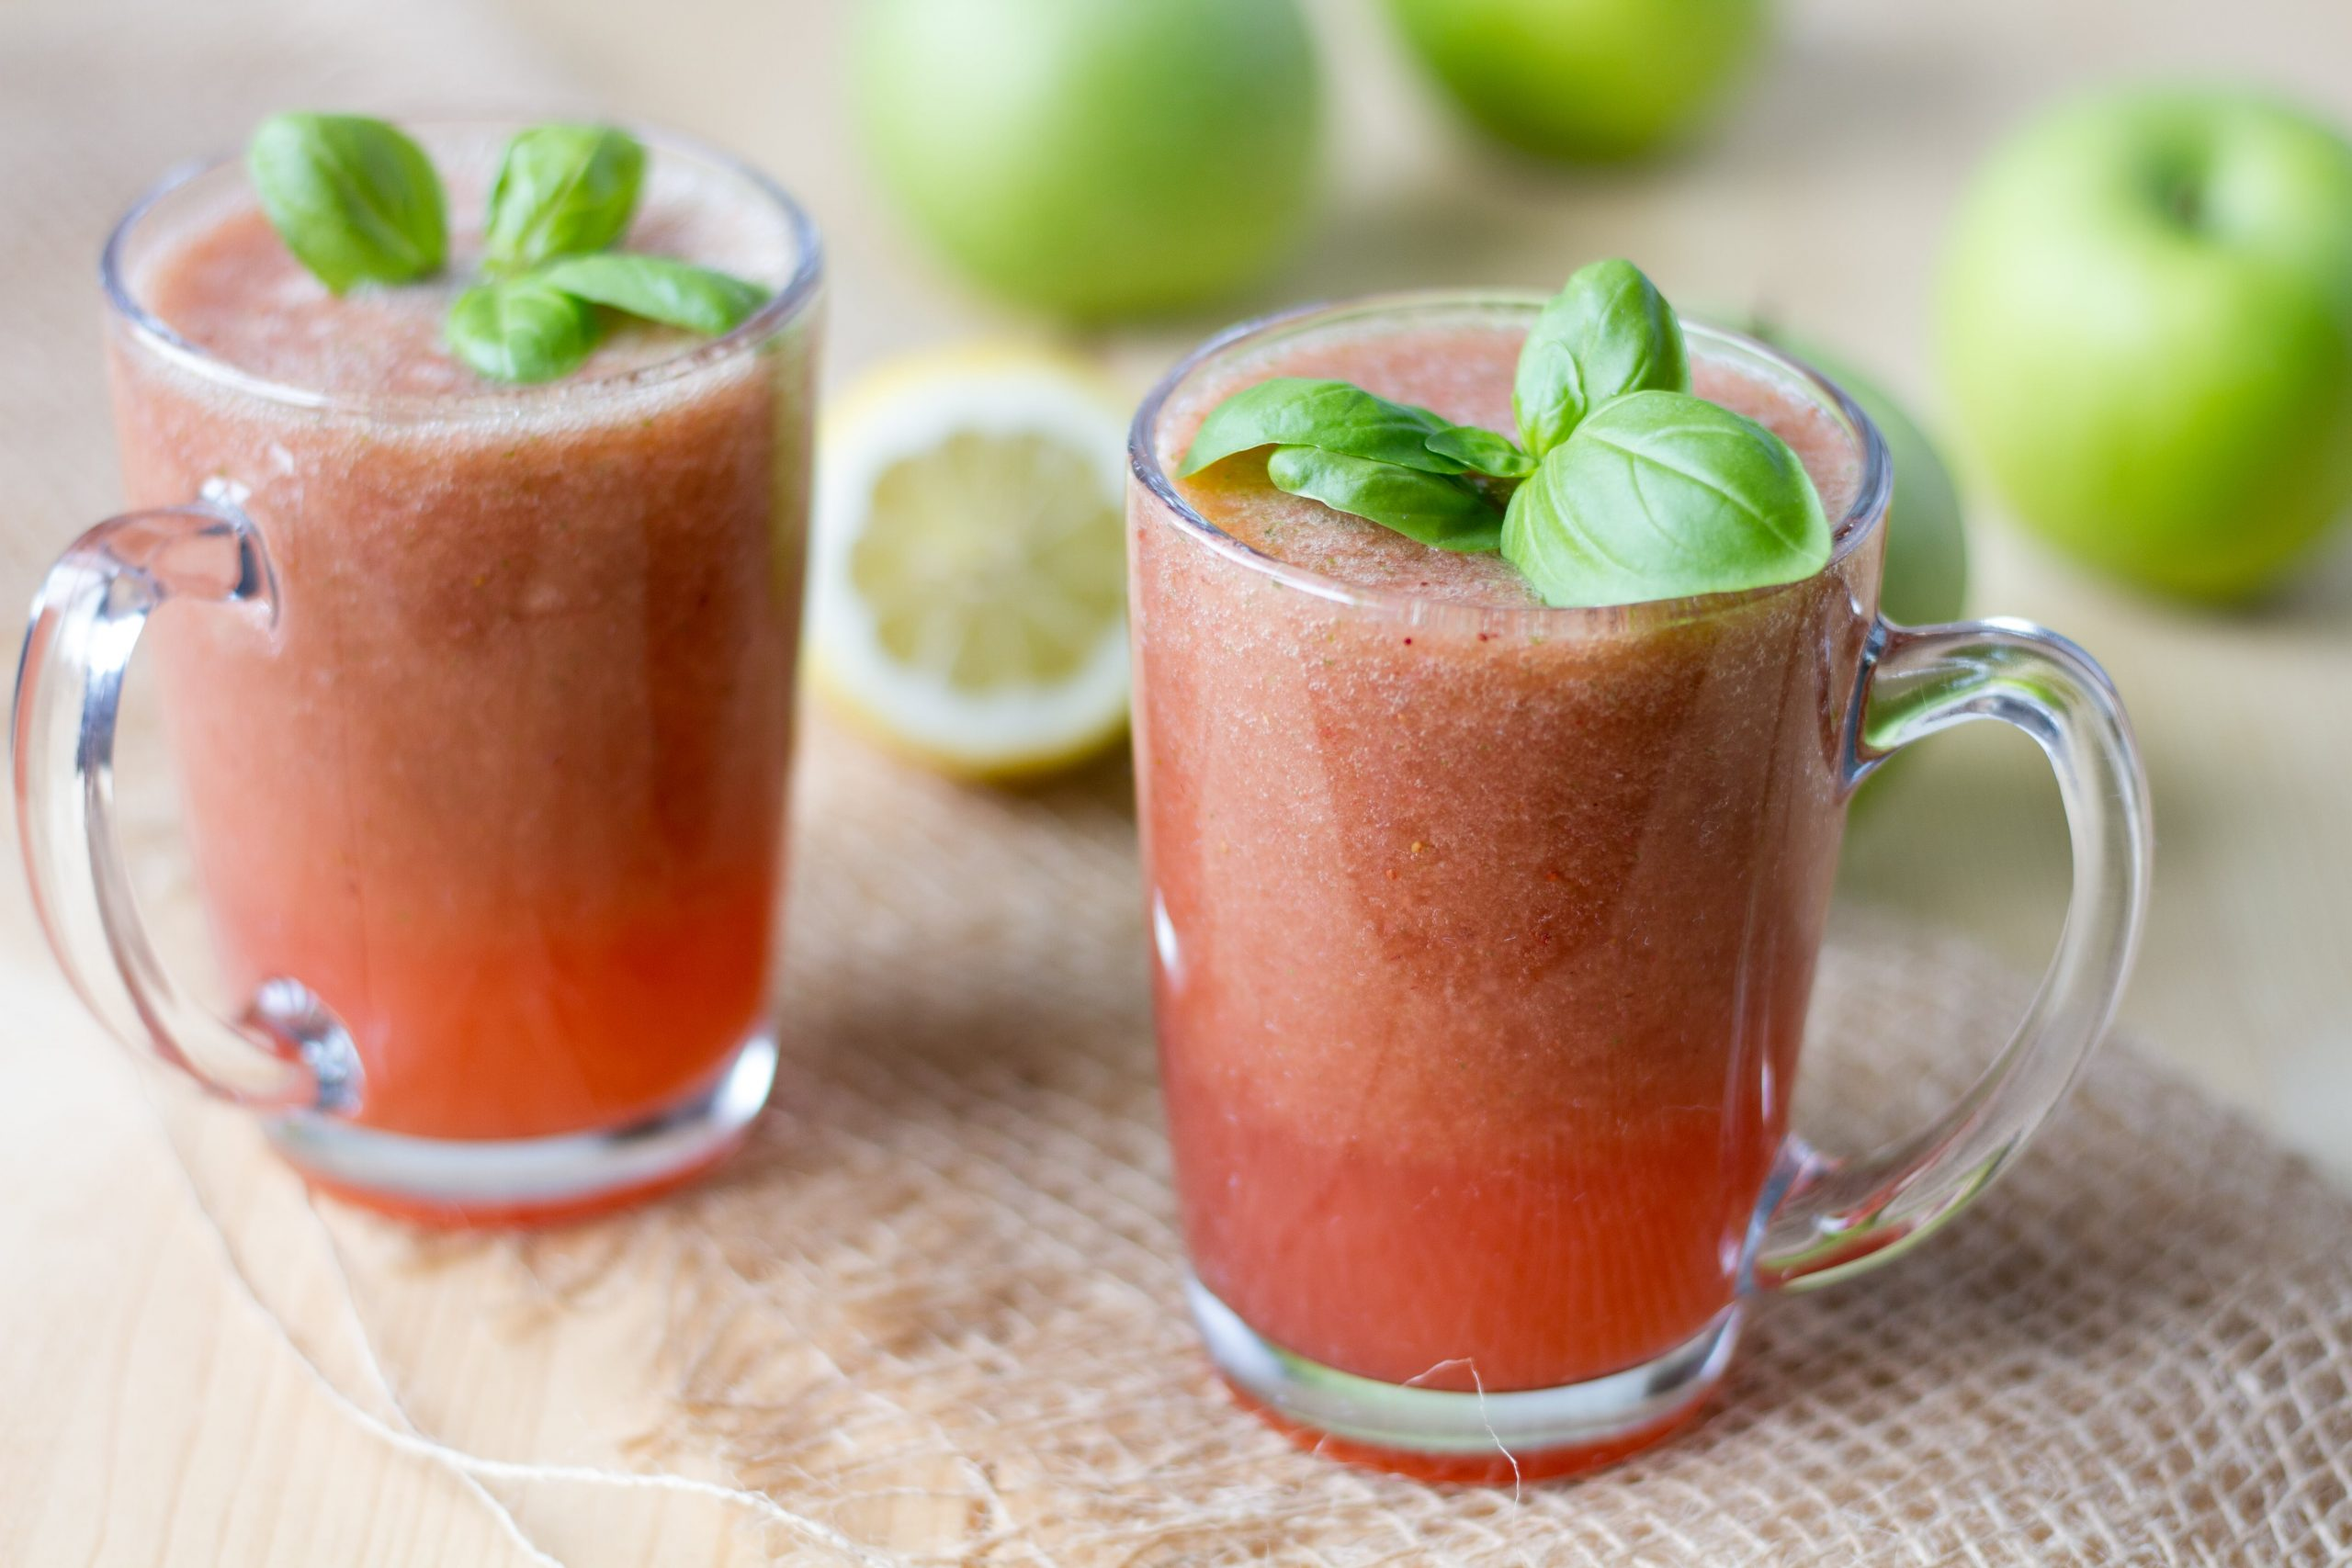 Strawberry and cucumber cocktail with apple